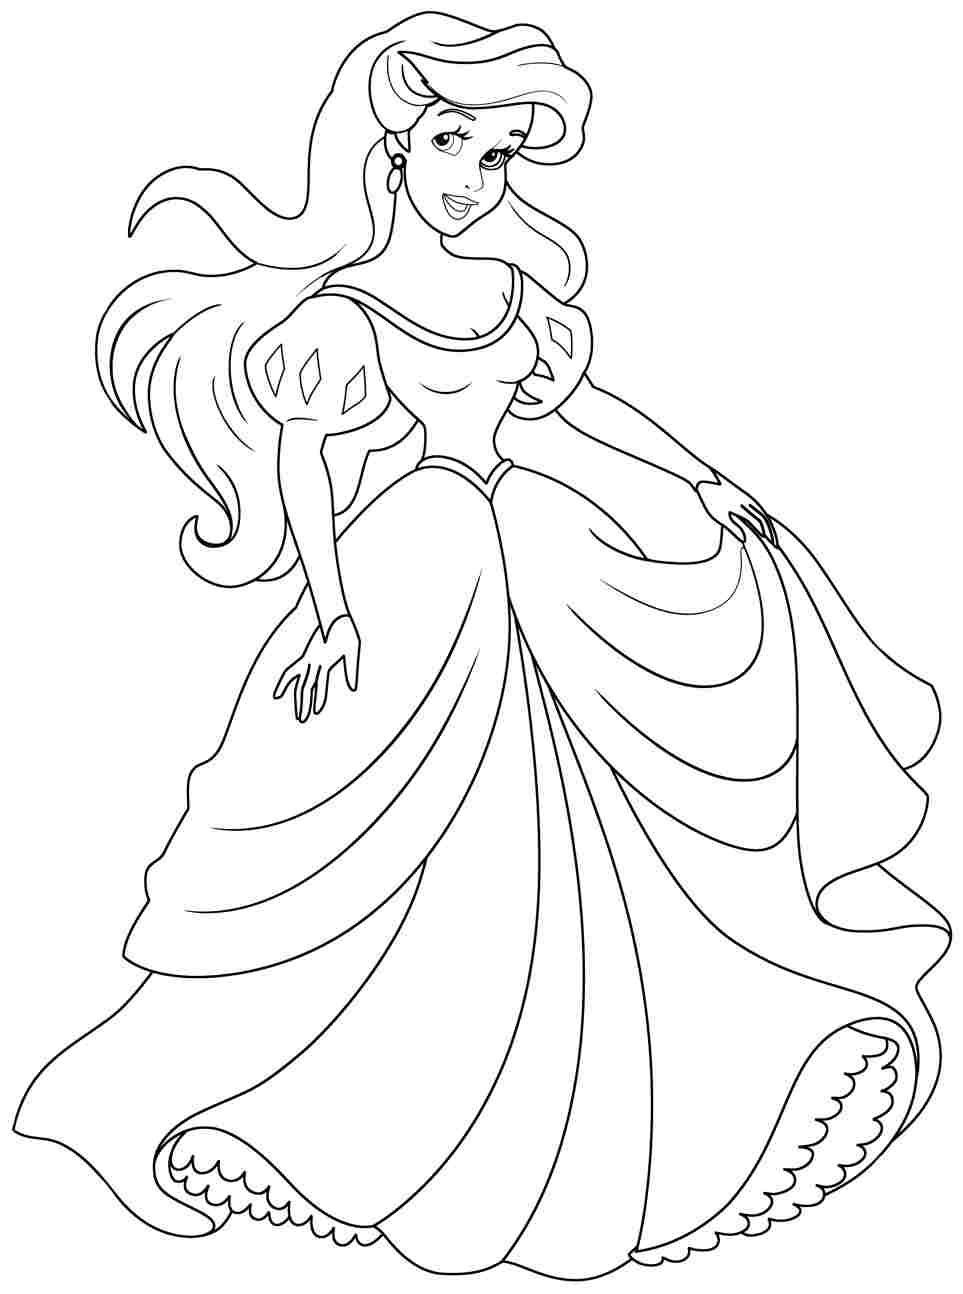 ariel disney coloring pages - photo#19